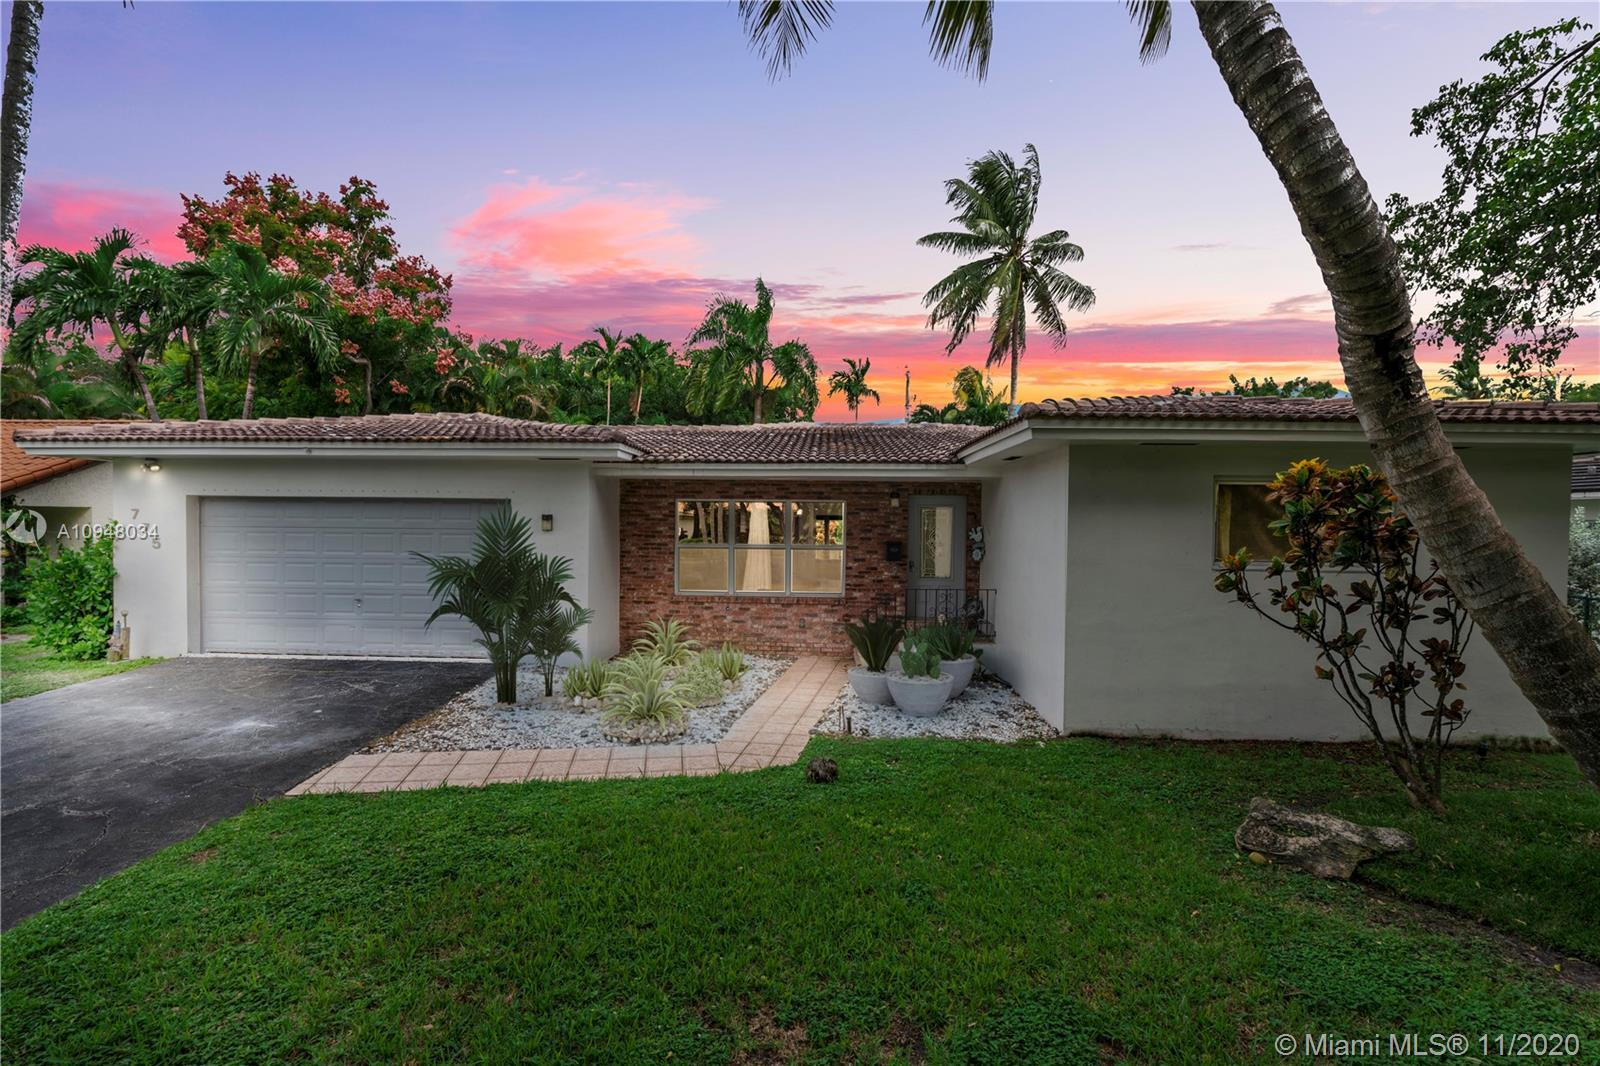 Large spacious home high-ceilings, open format. Lots of light. Updated kitchen quartz countertops an